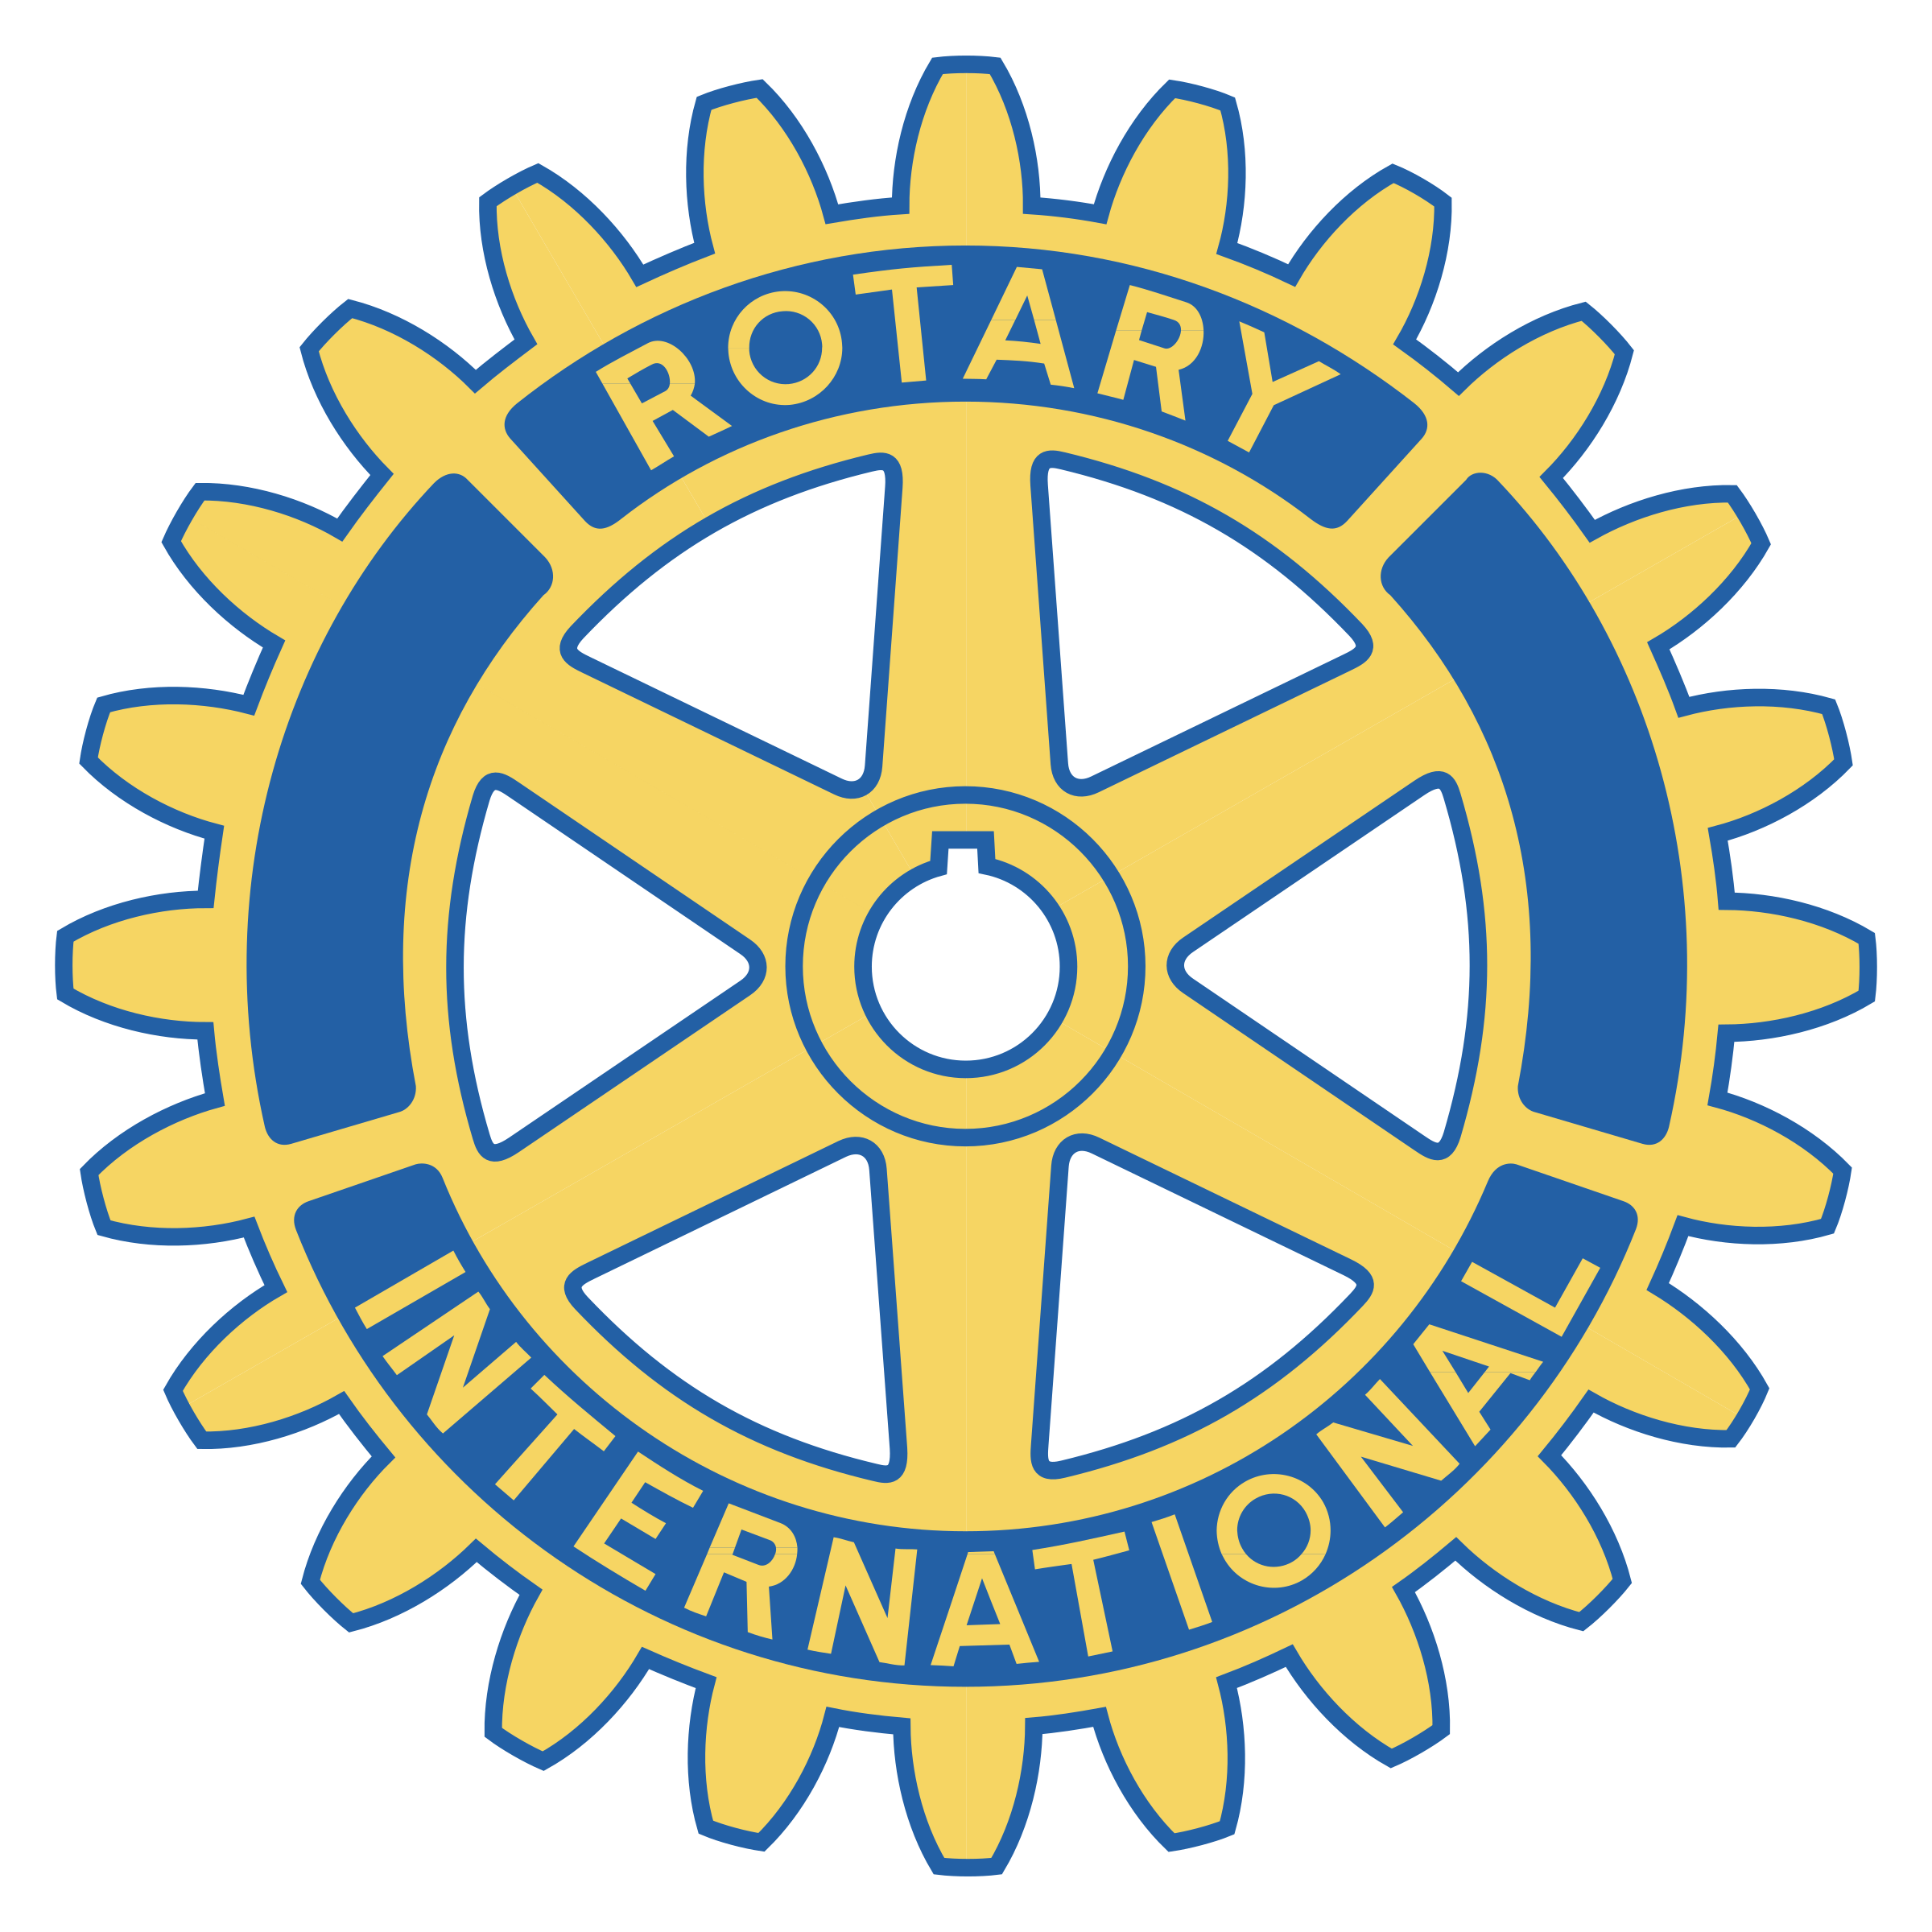 Mechanical Power joins a local Midwest branch of Rotary International